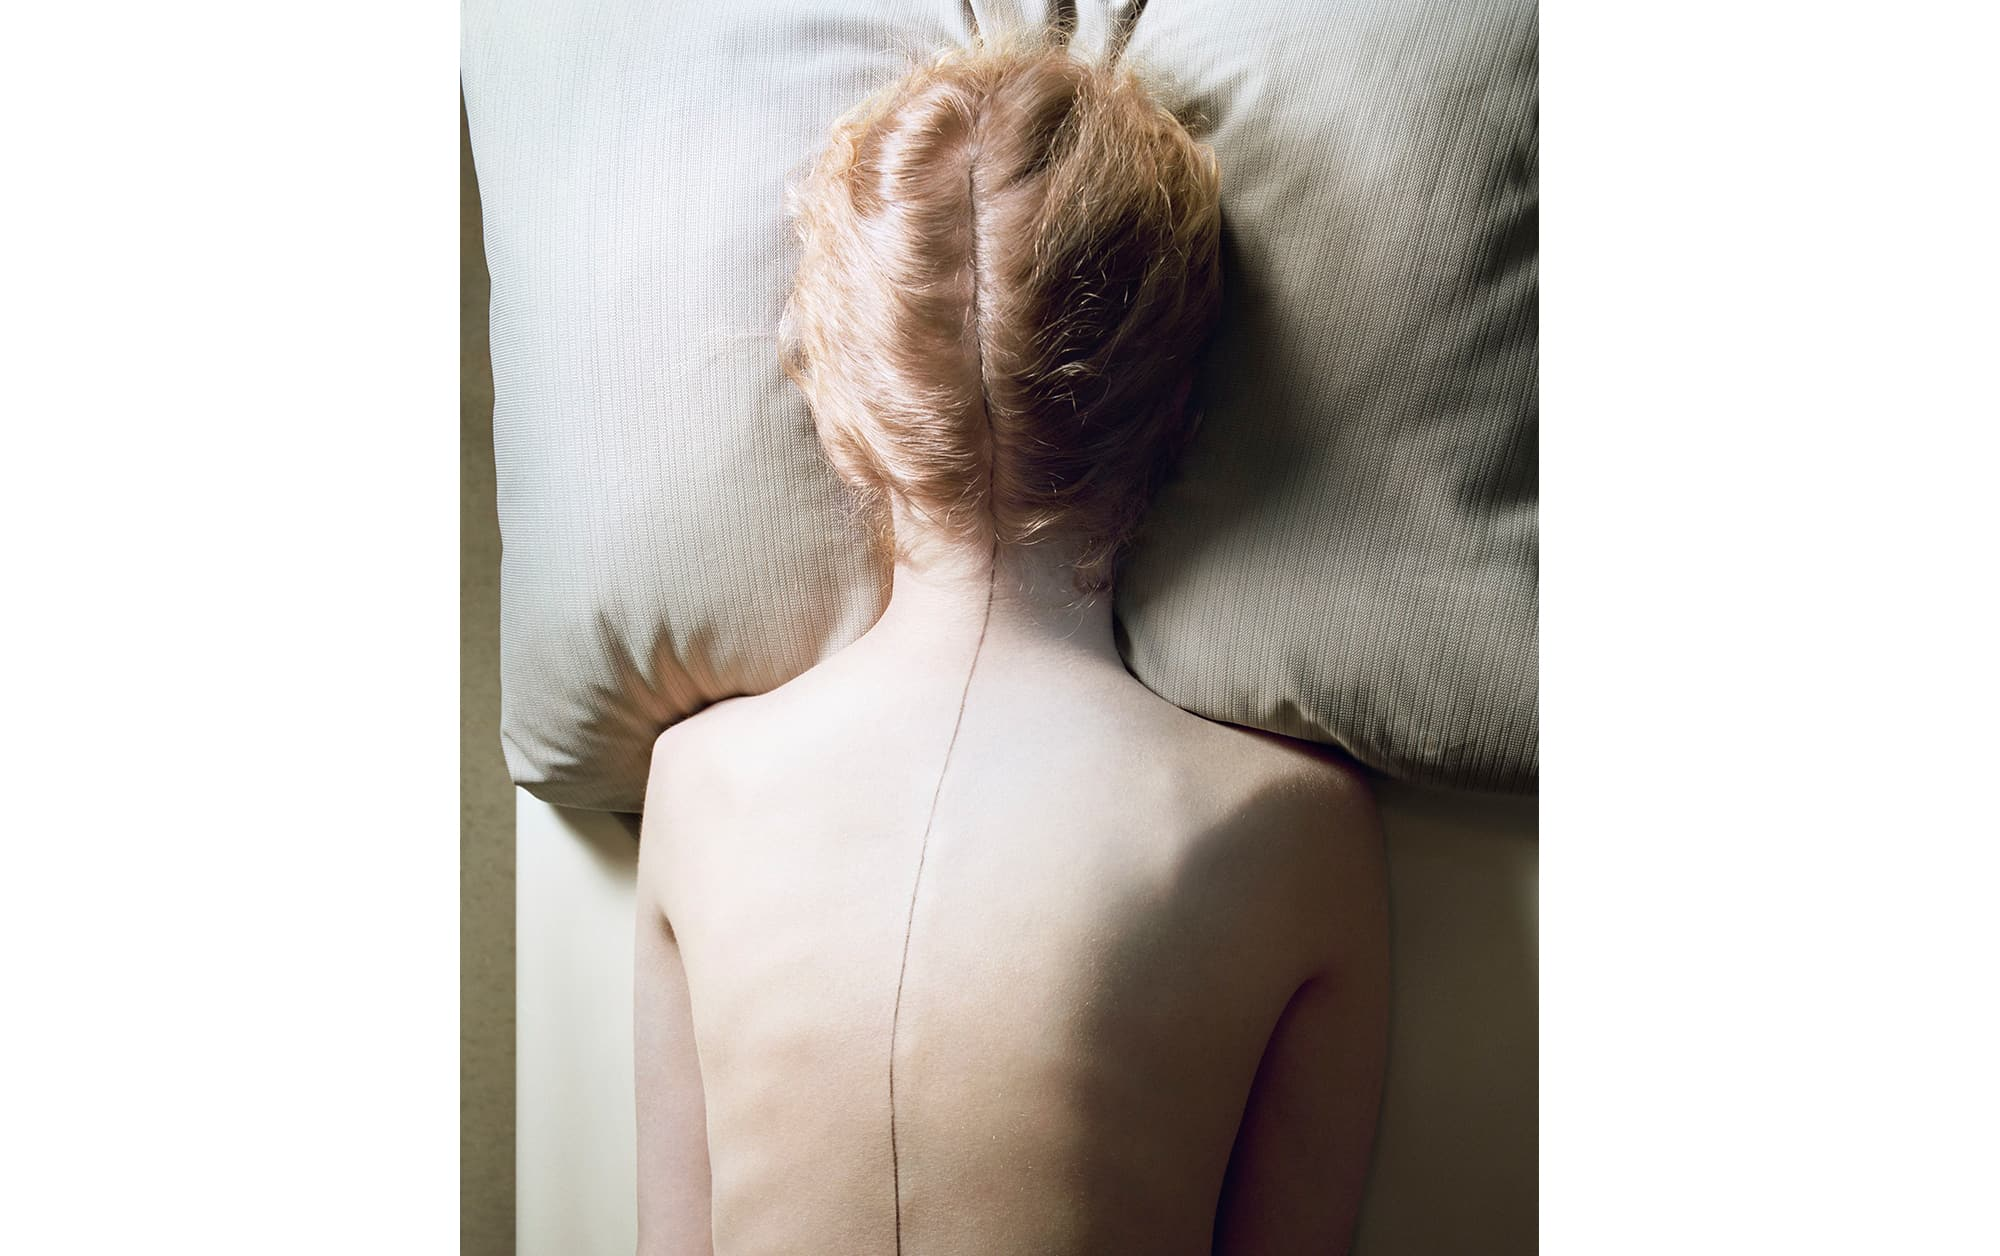 Jo Ann Callis, Untitled, from Early Color, Portforlio, Cinra 1976